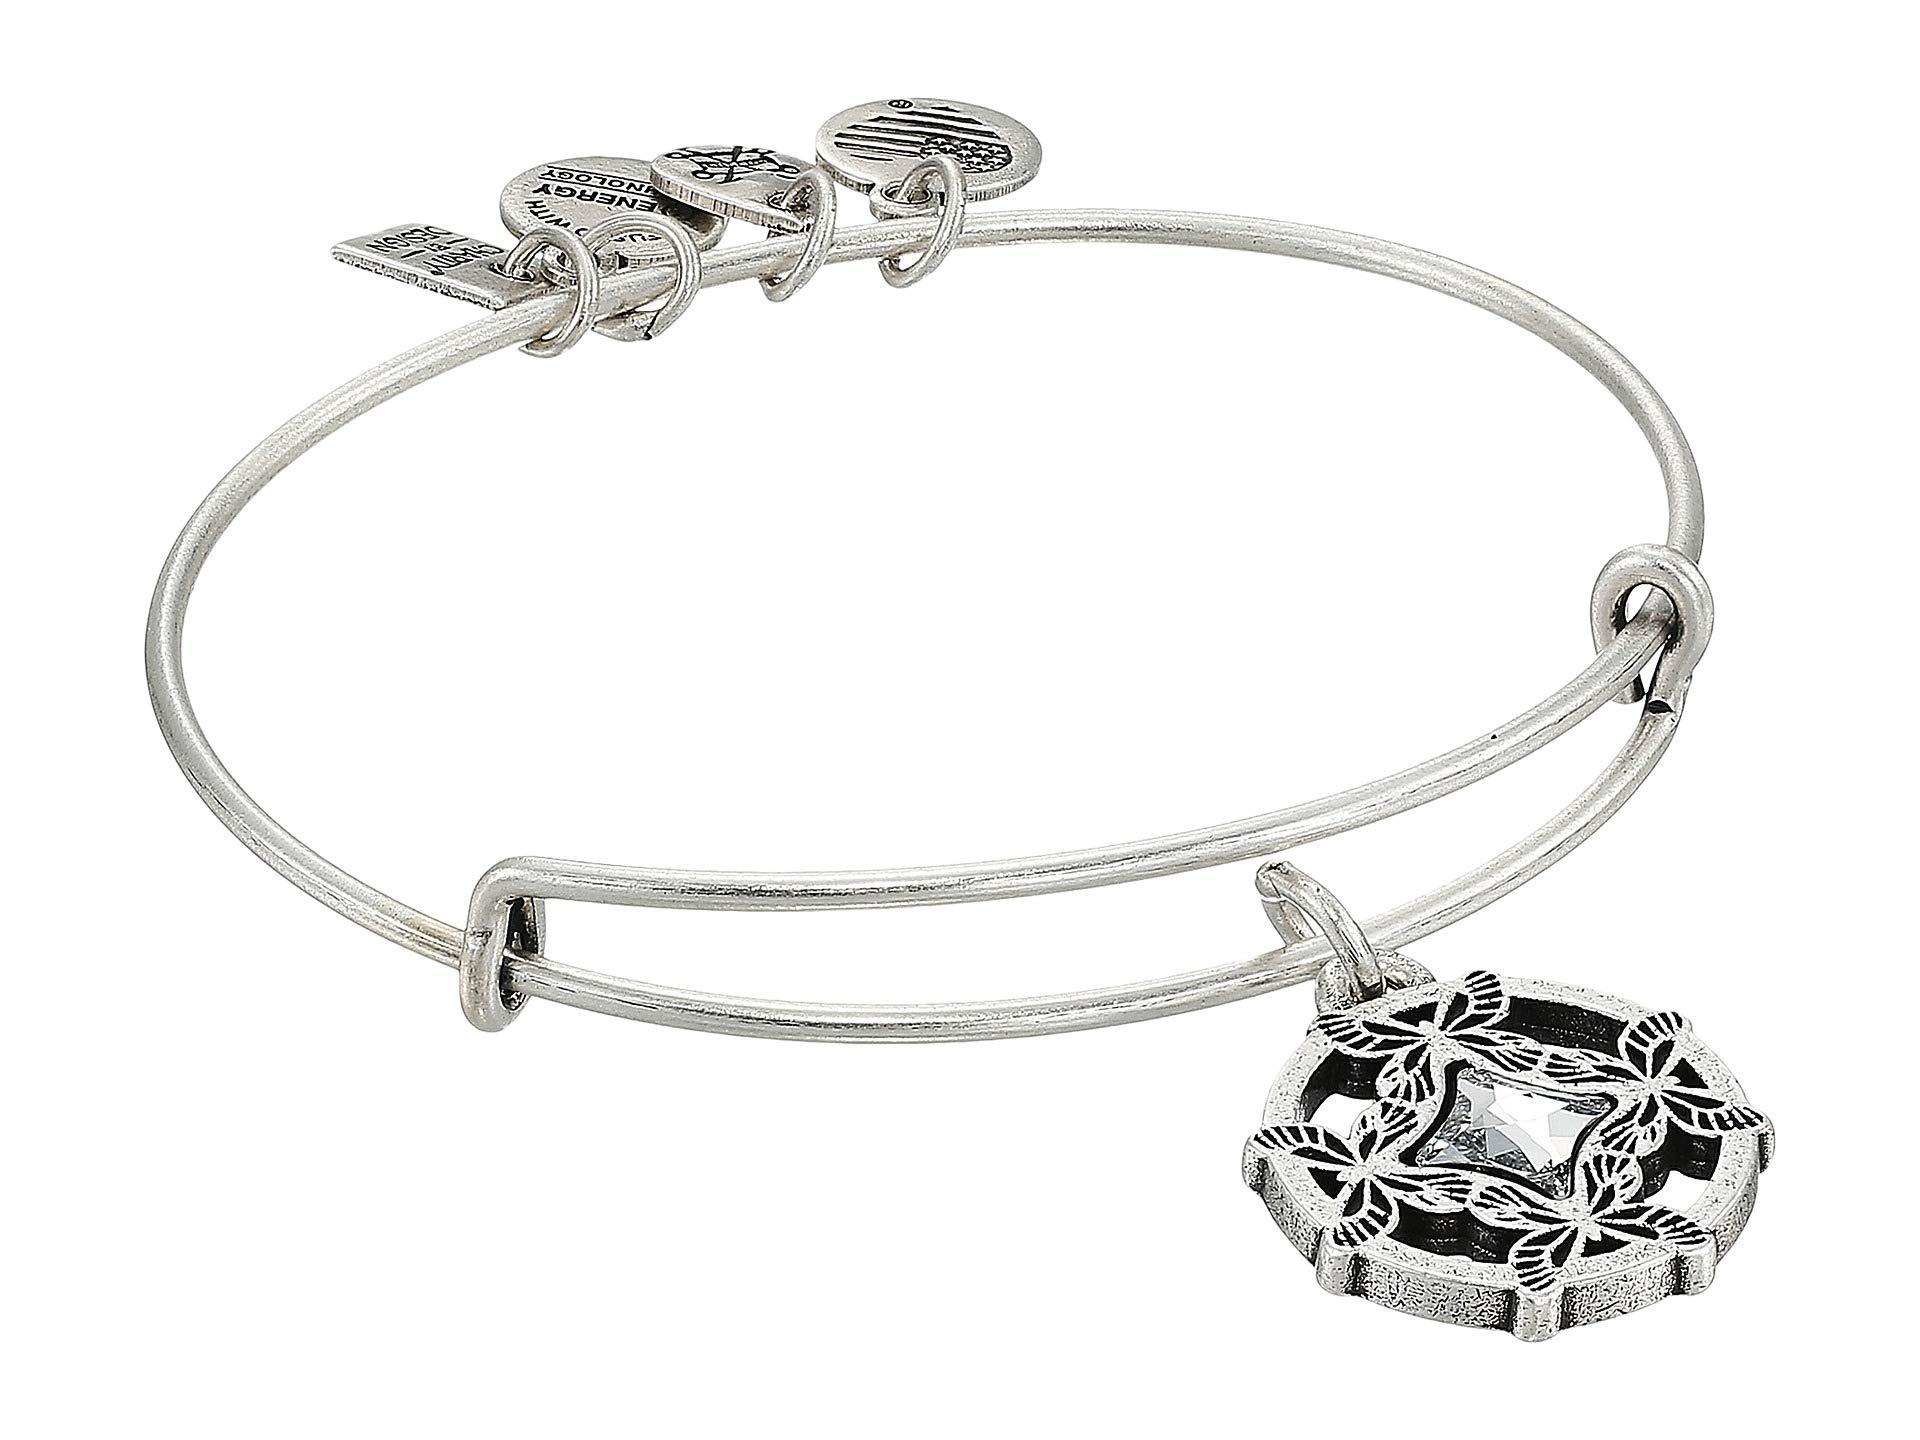 7c83bfb0af924 ALEX AND ANI Charity By Design, Wings Of Change Ii Charm Bangle ...